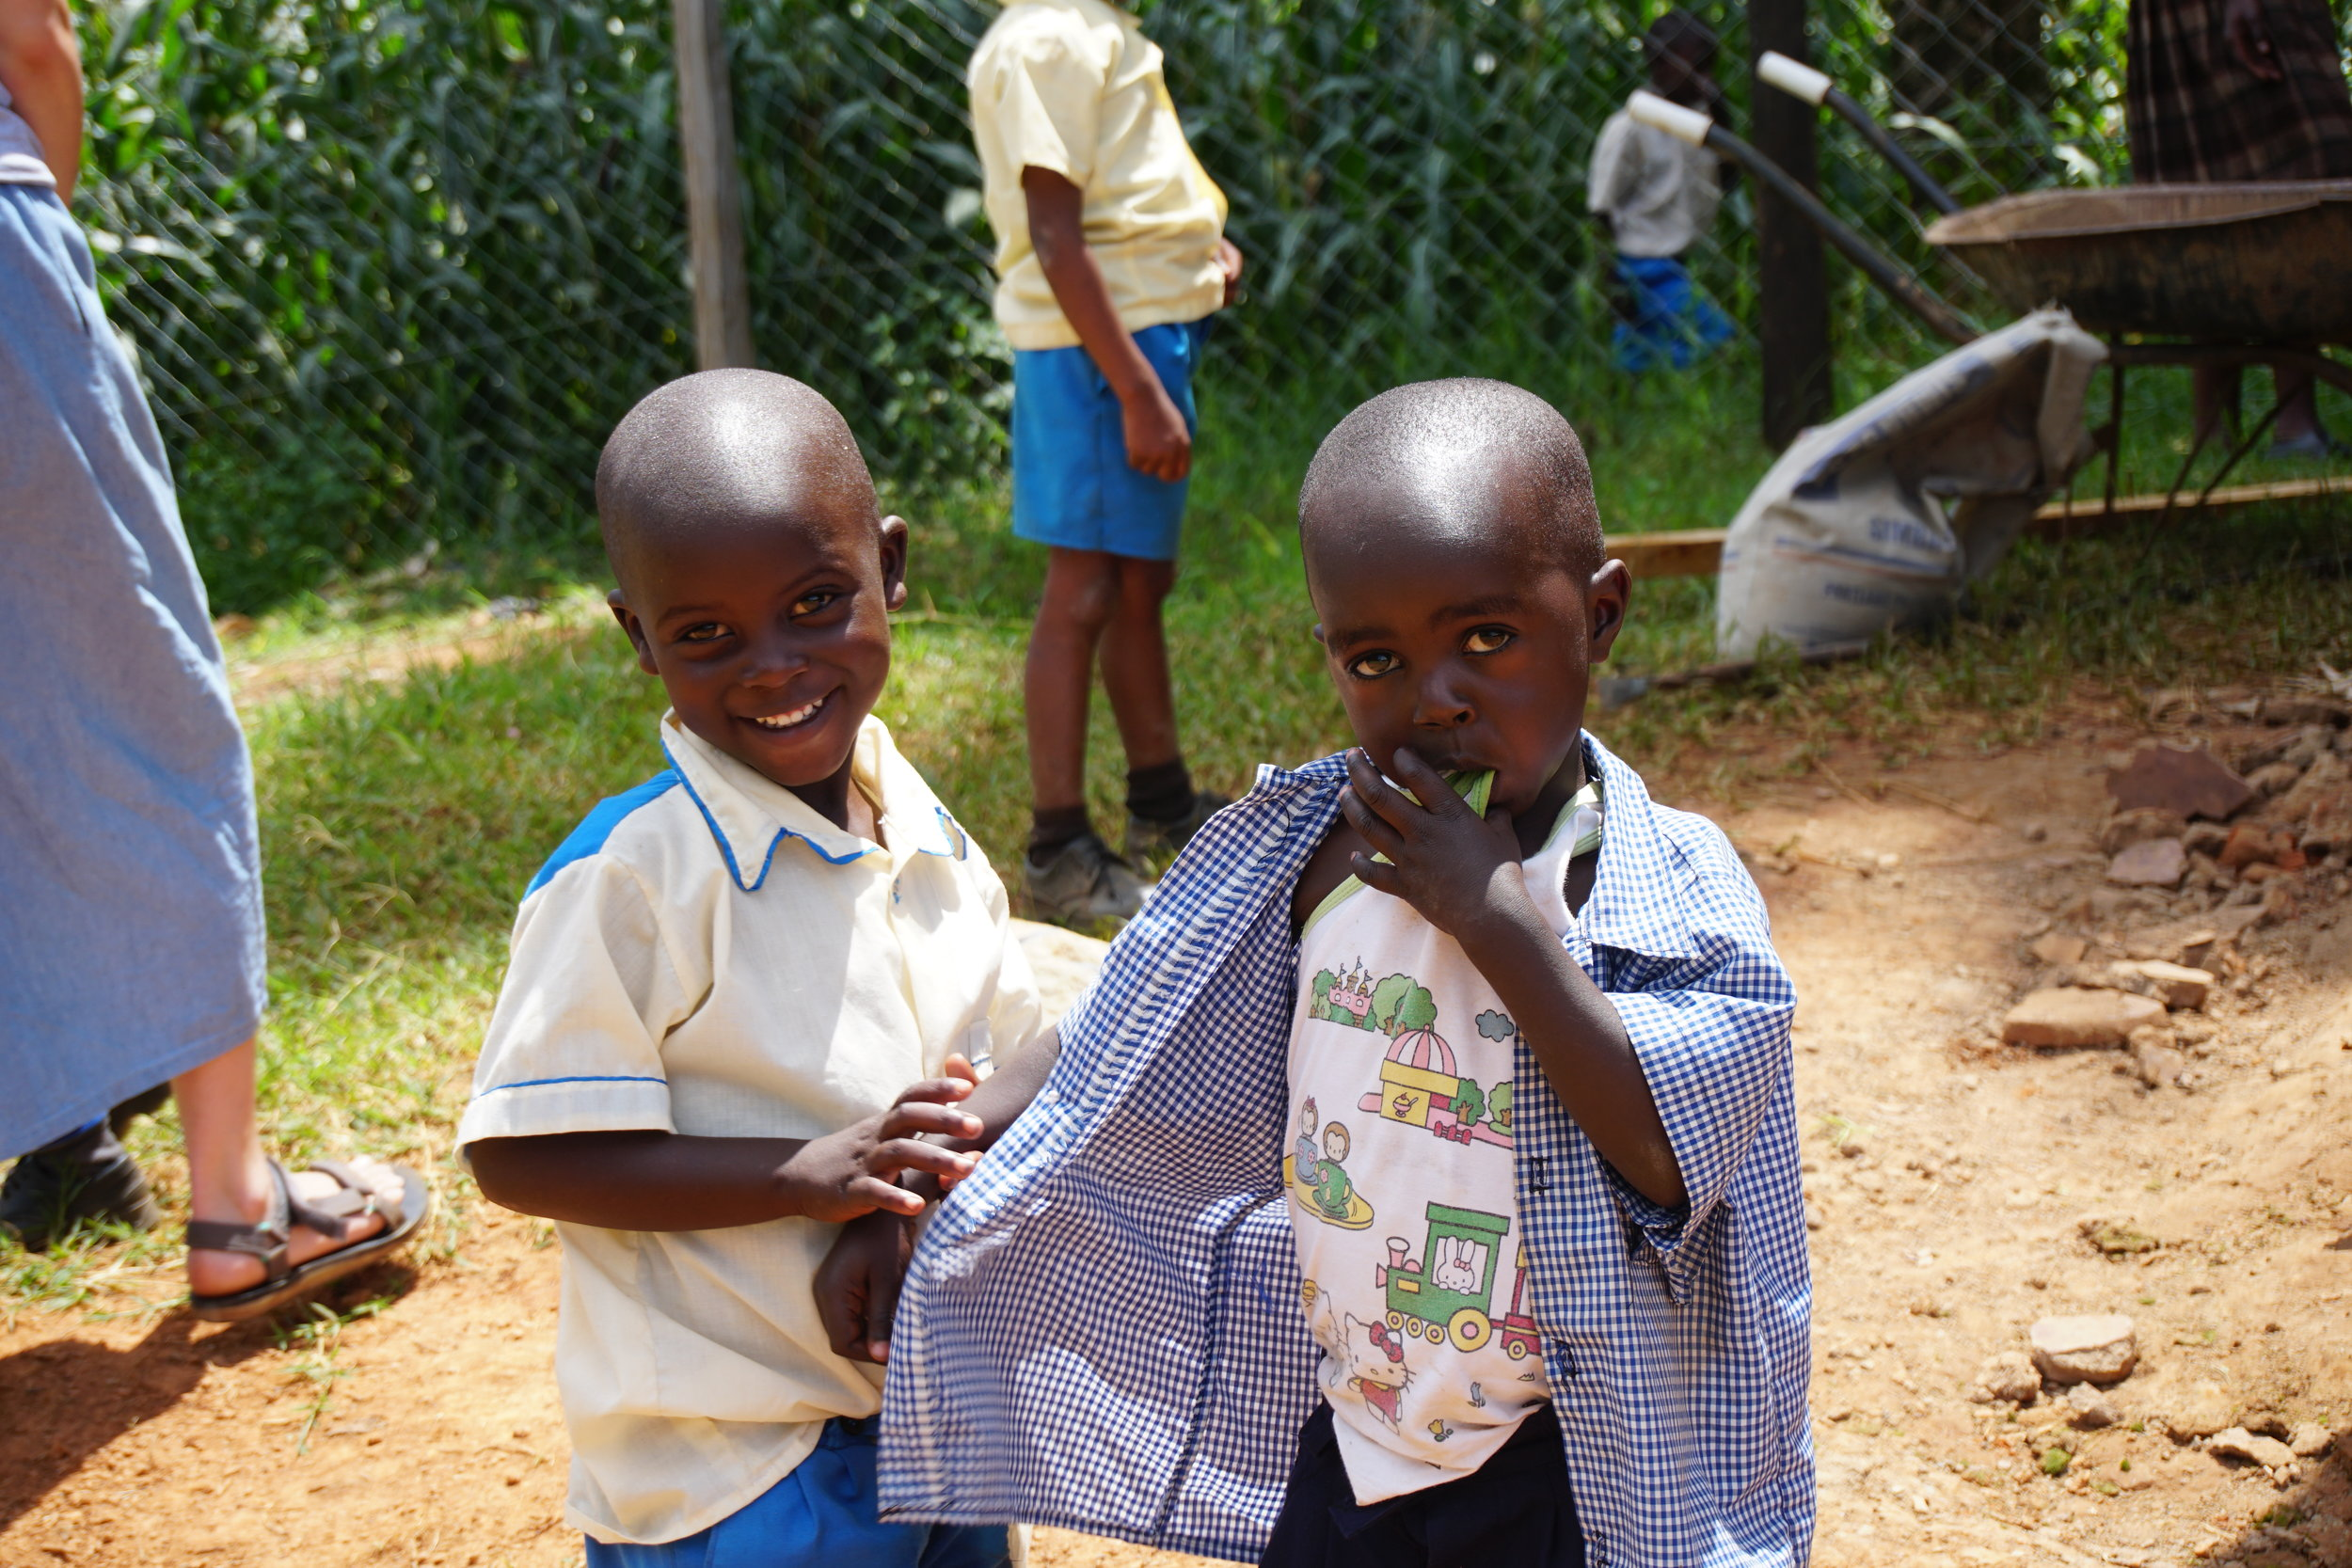 These two boys were from HIP's youngest grade. The students were still getting used to wearing the school uniforms.